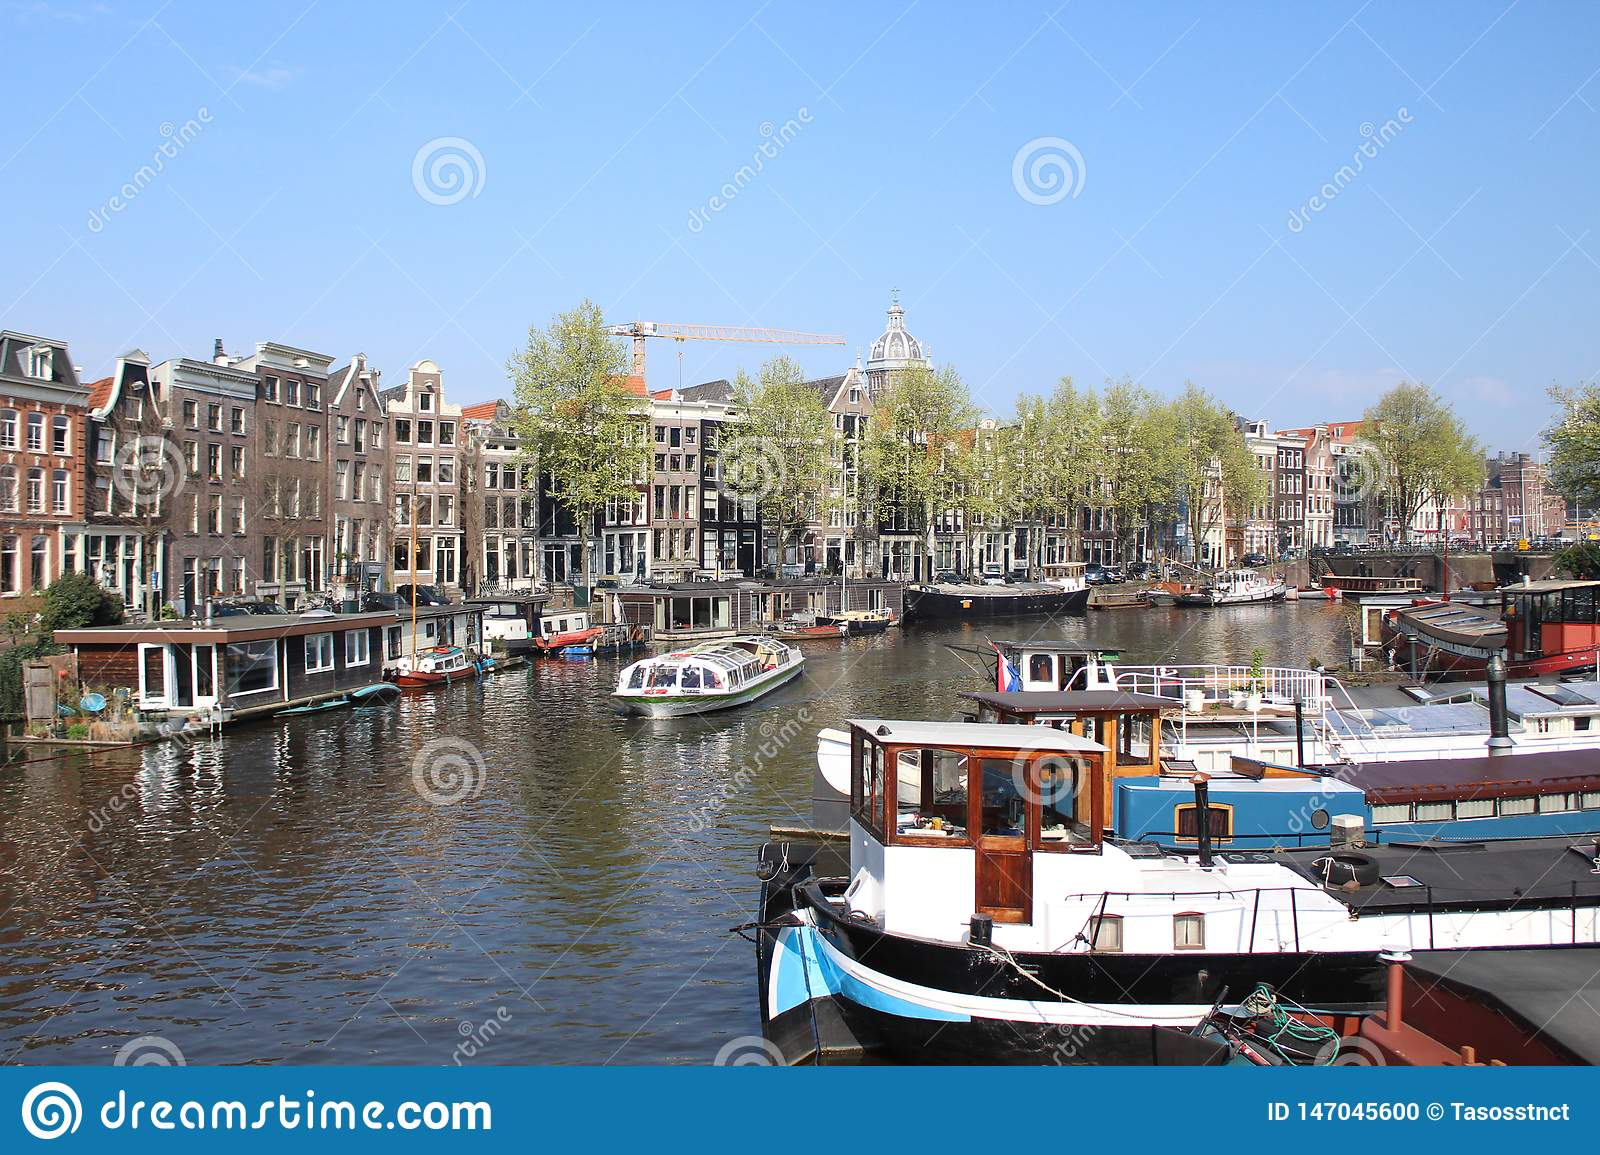 Picturesque neighborhood in the heart of amsterdam  with some amazing  reflections